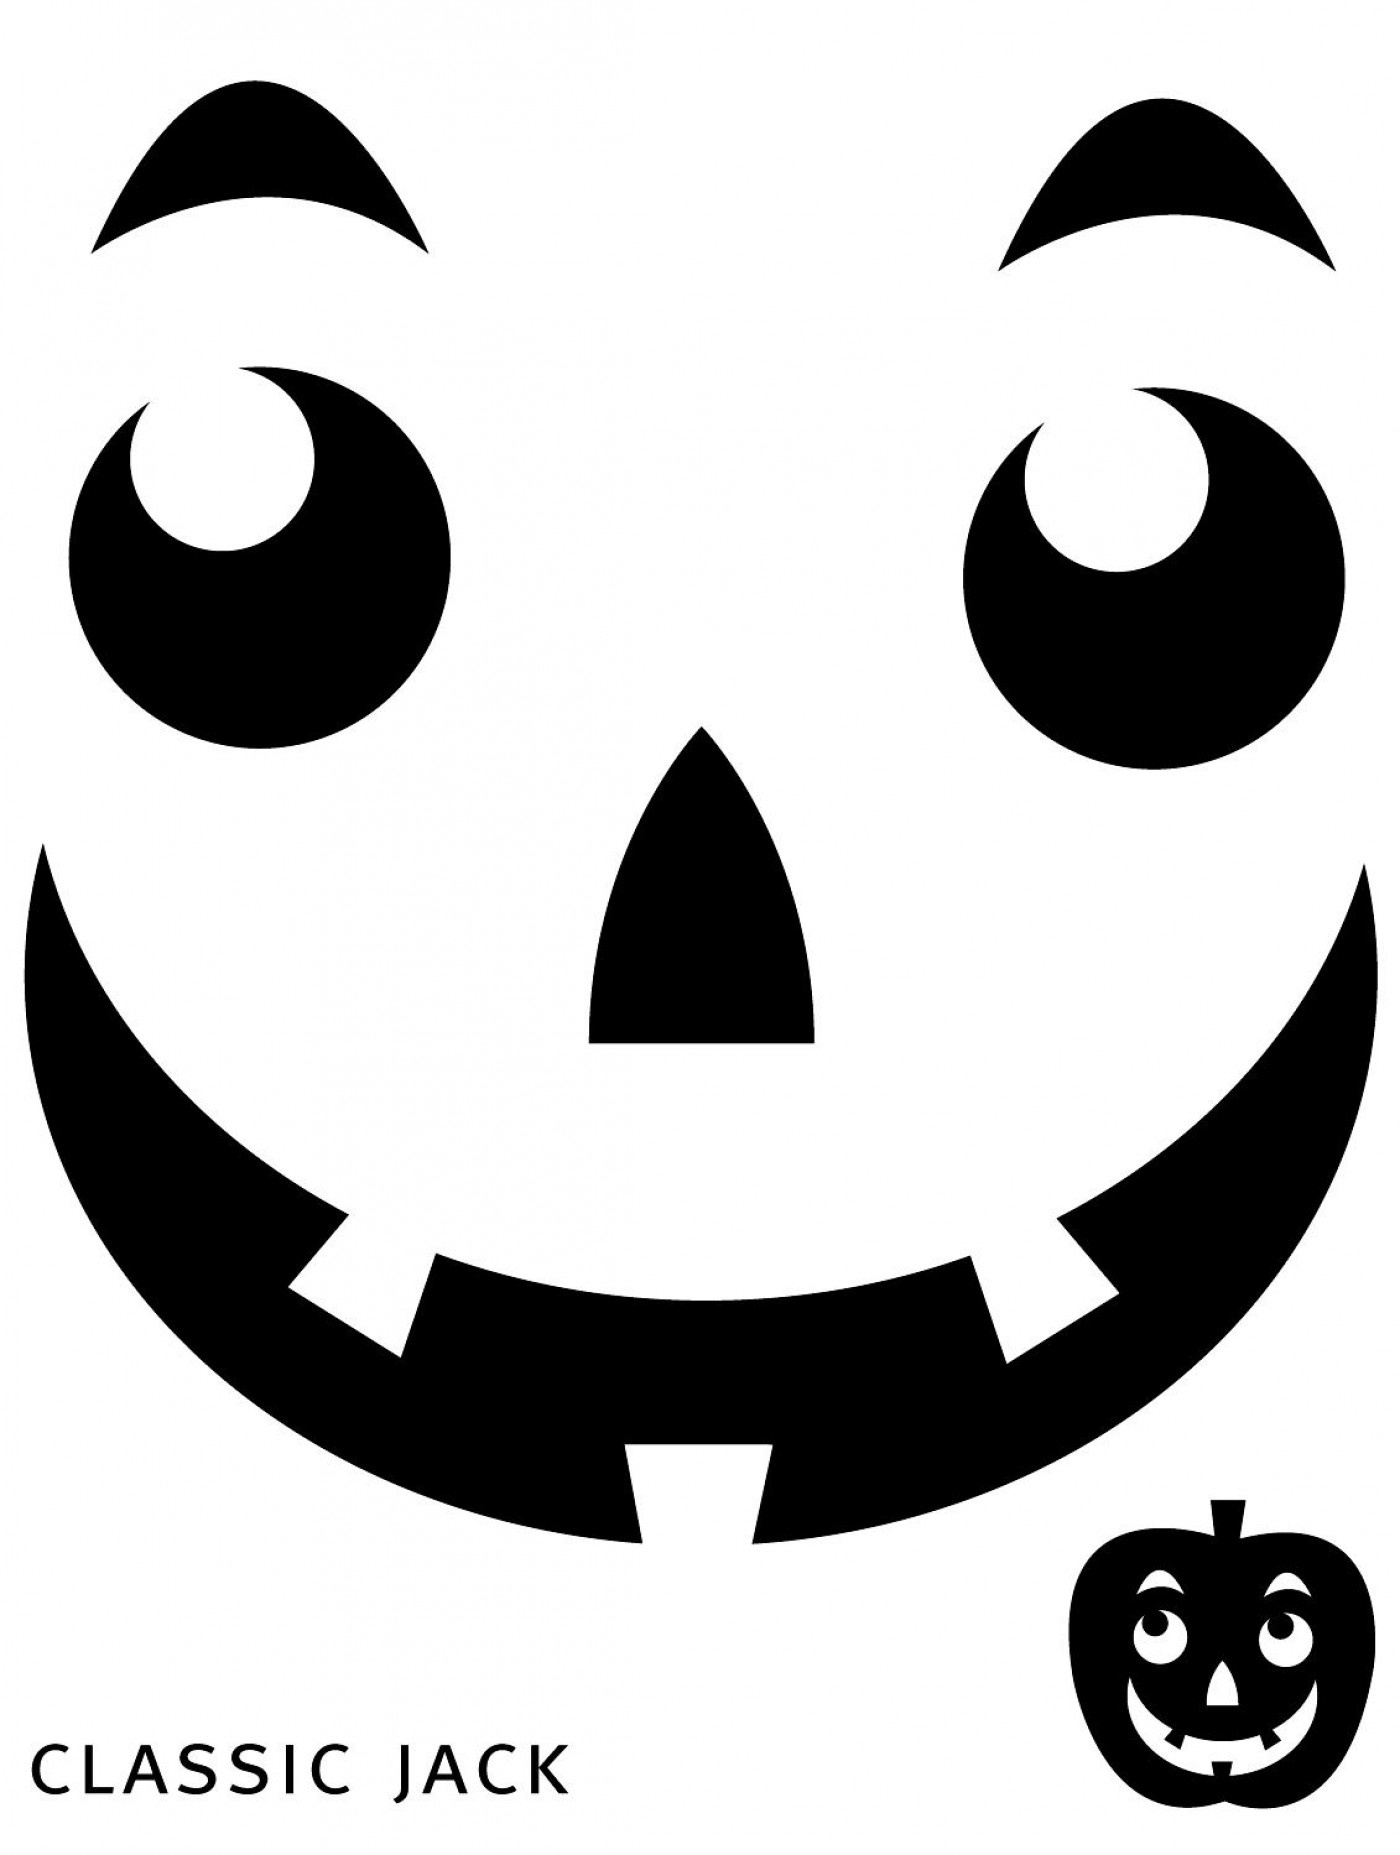 003 Free Pumpkin Templates Printable Template Phenomenal Ideas - Free Pumpkin Printable Carving Patterns